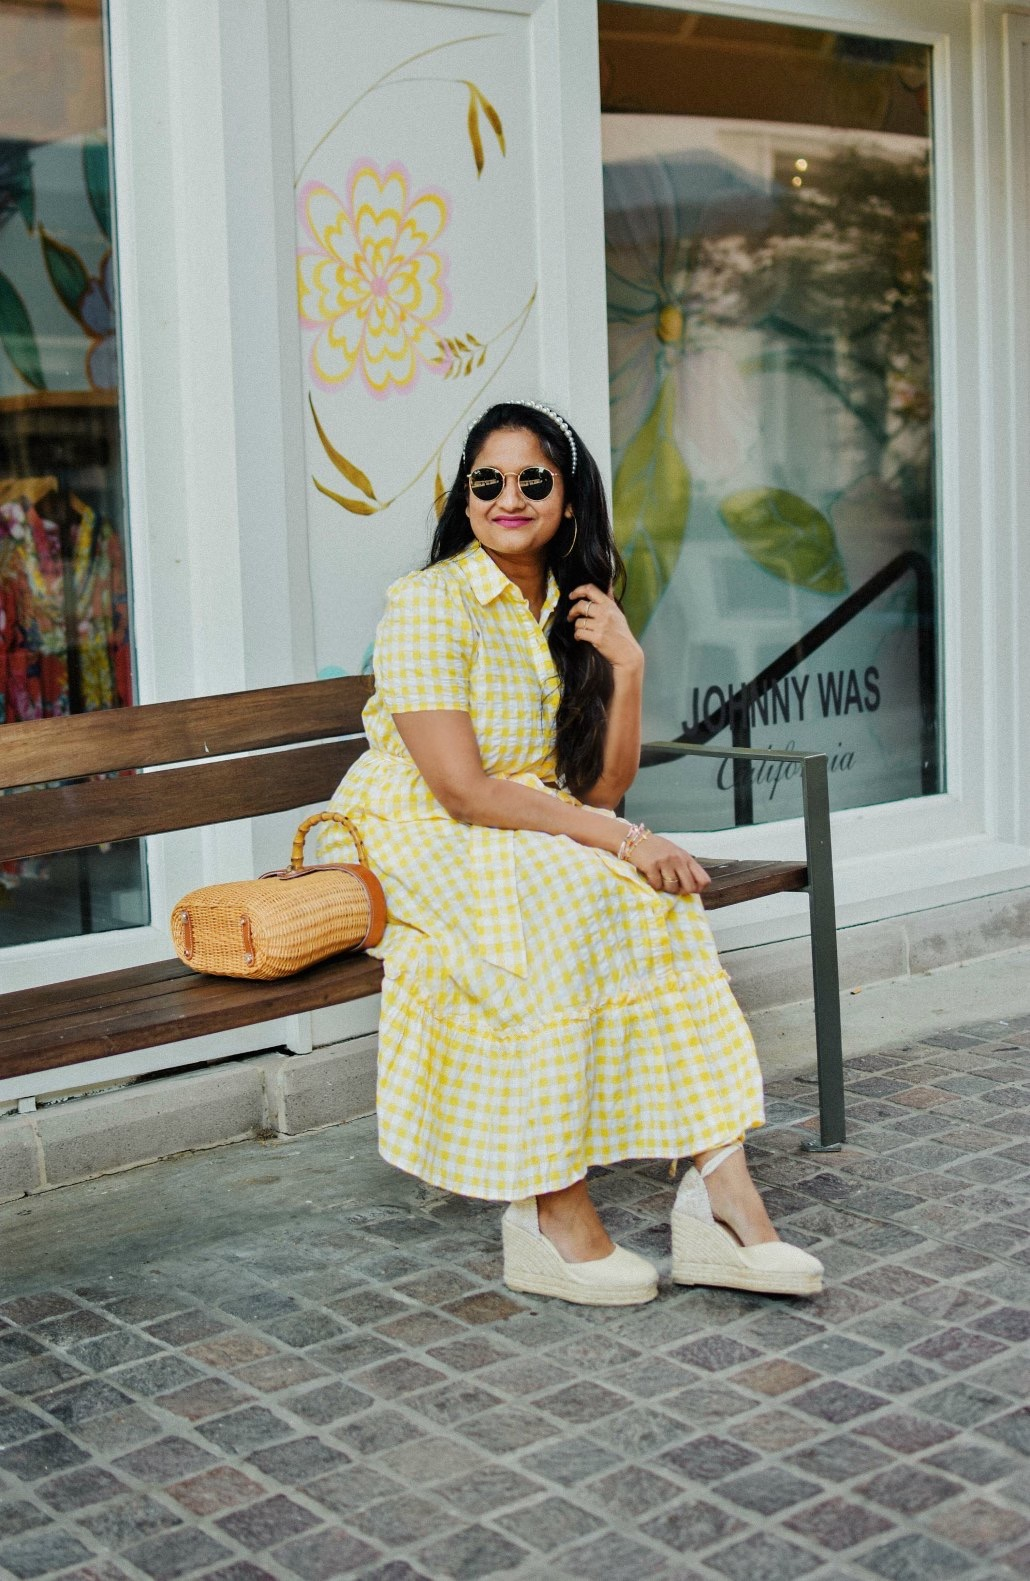 Wearing Wearing Lisa Marie Fernandez for Target Gingham Puff Sleeve Shirtdress, Castaner Carina Wedges in Cream, J.McLaughlin Ava wicker bag, pearl Headband 6 | Lisa Marie Fernandez by popular Maryland fashion blog, Dreaming Loud: image of a woman a Target Lisa Marie Fernandez yellow gingham dress, Castañer cream Carina 80 ankle tie wedge sandals, Amazon LXBSIYI Huge Gold Hoop Earrings, Olive and Piper Madison Pearl Headband, and holding a J. McLaughlin Skip to the end of the images gallery Skip to the beginning of the images gallery Ava Wicker Bag.